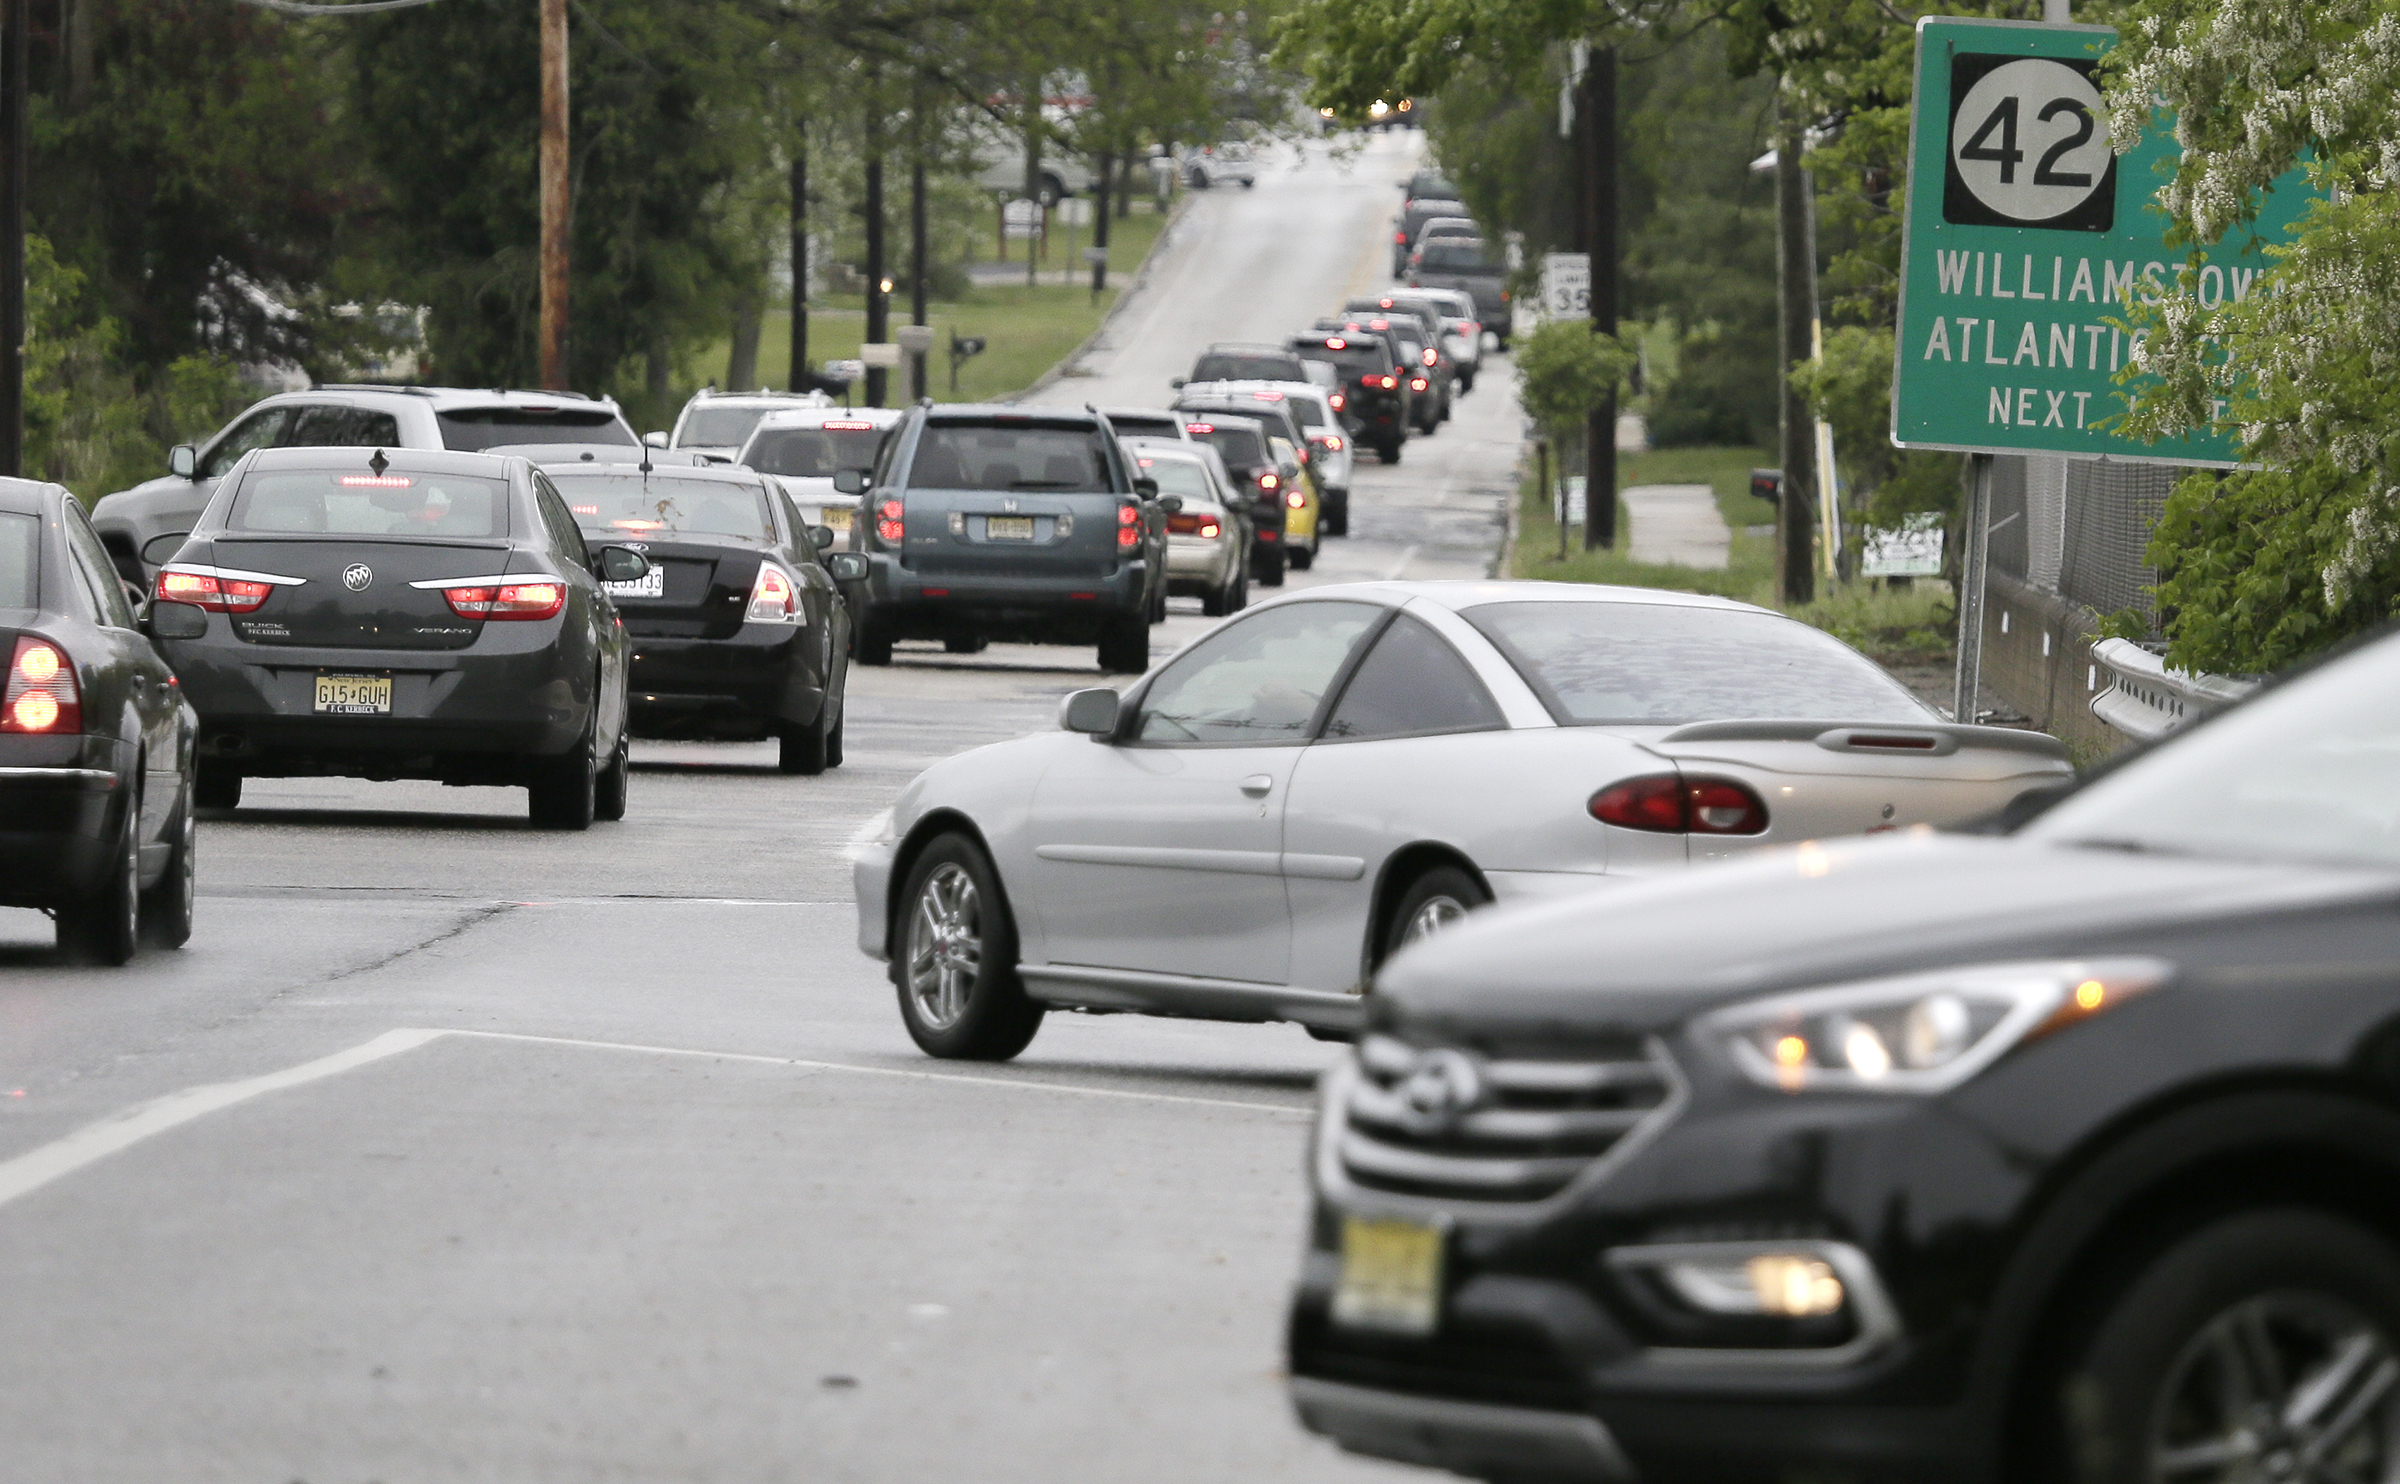 Motorists get off of Rt. 42 northbound at Coles Rd in Gloucester Twp only to find traffic backed up there too. Emergency construction on Rt 76 in Gloucester has traffic backed up on many highways including northbound Rt 42 and 55 and southbound 295 on May 13, 2018.